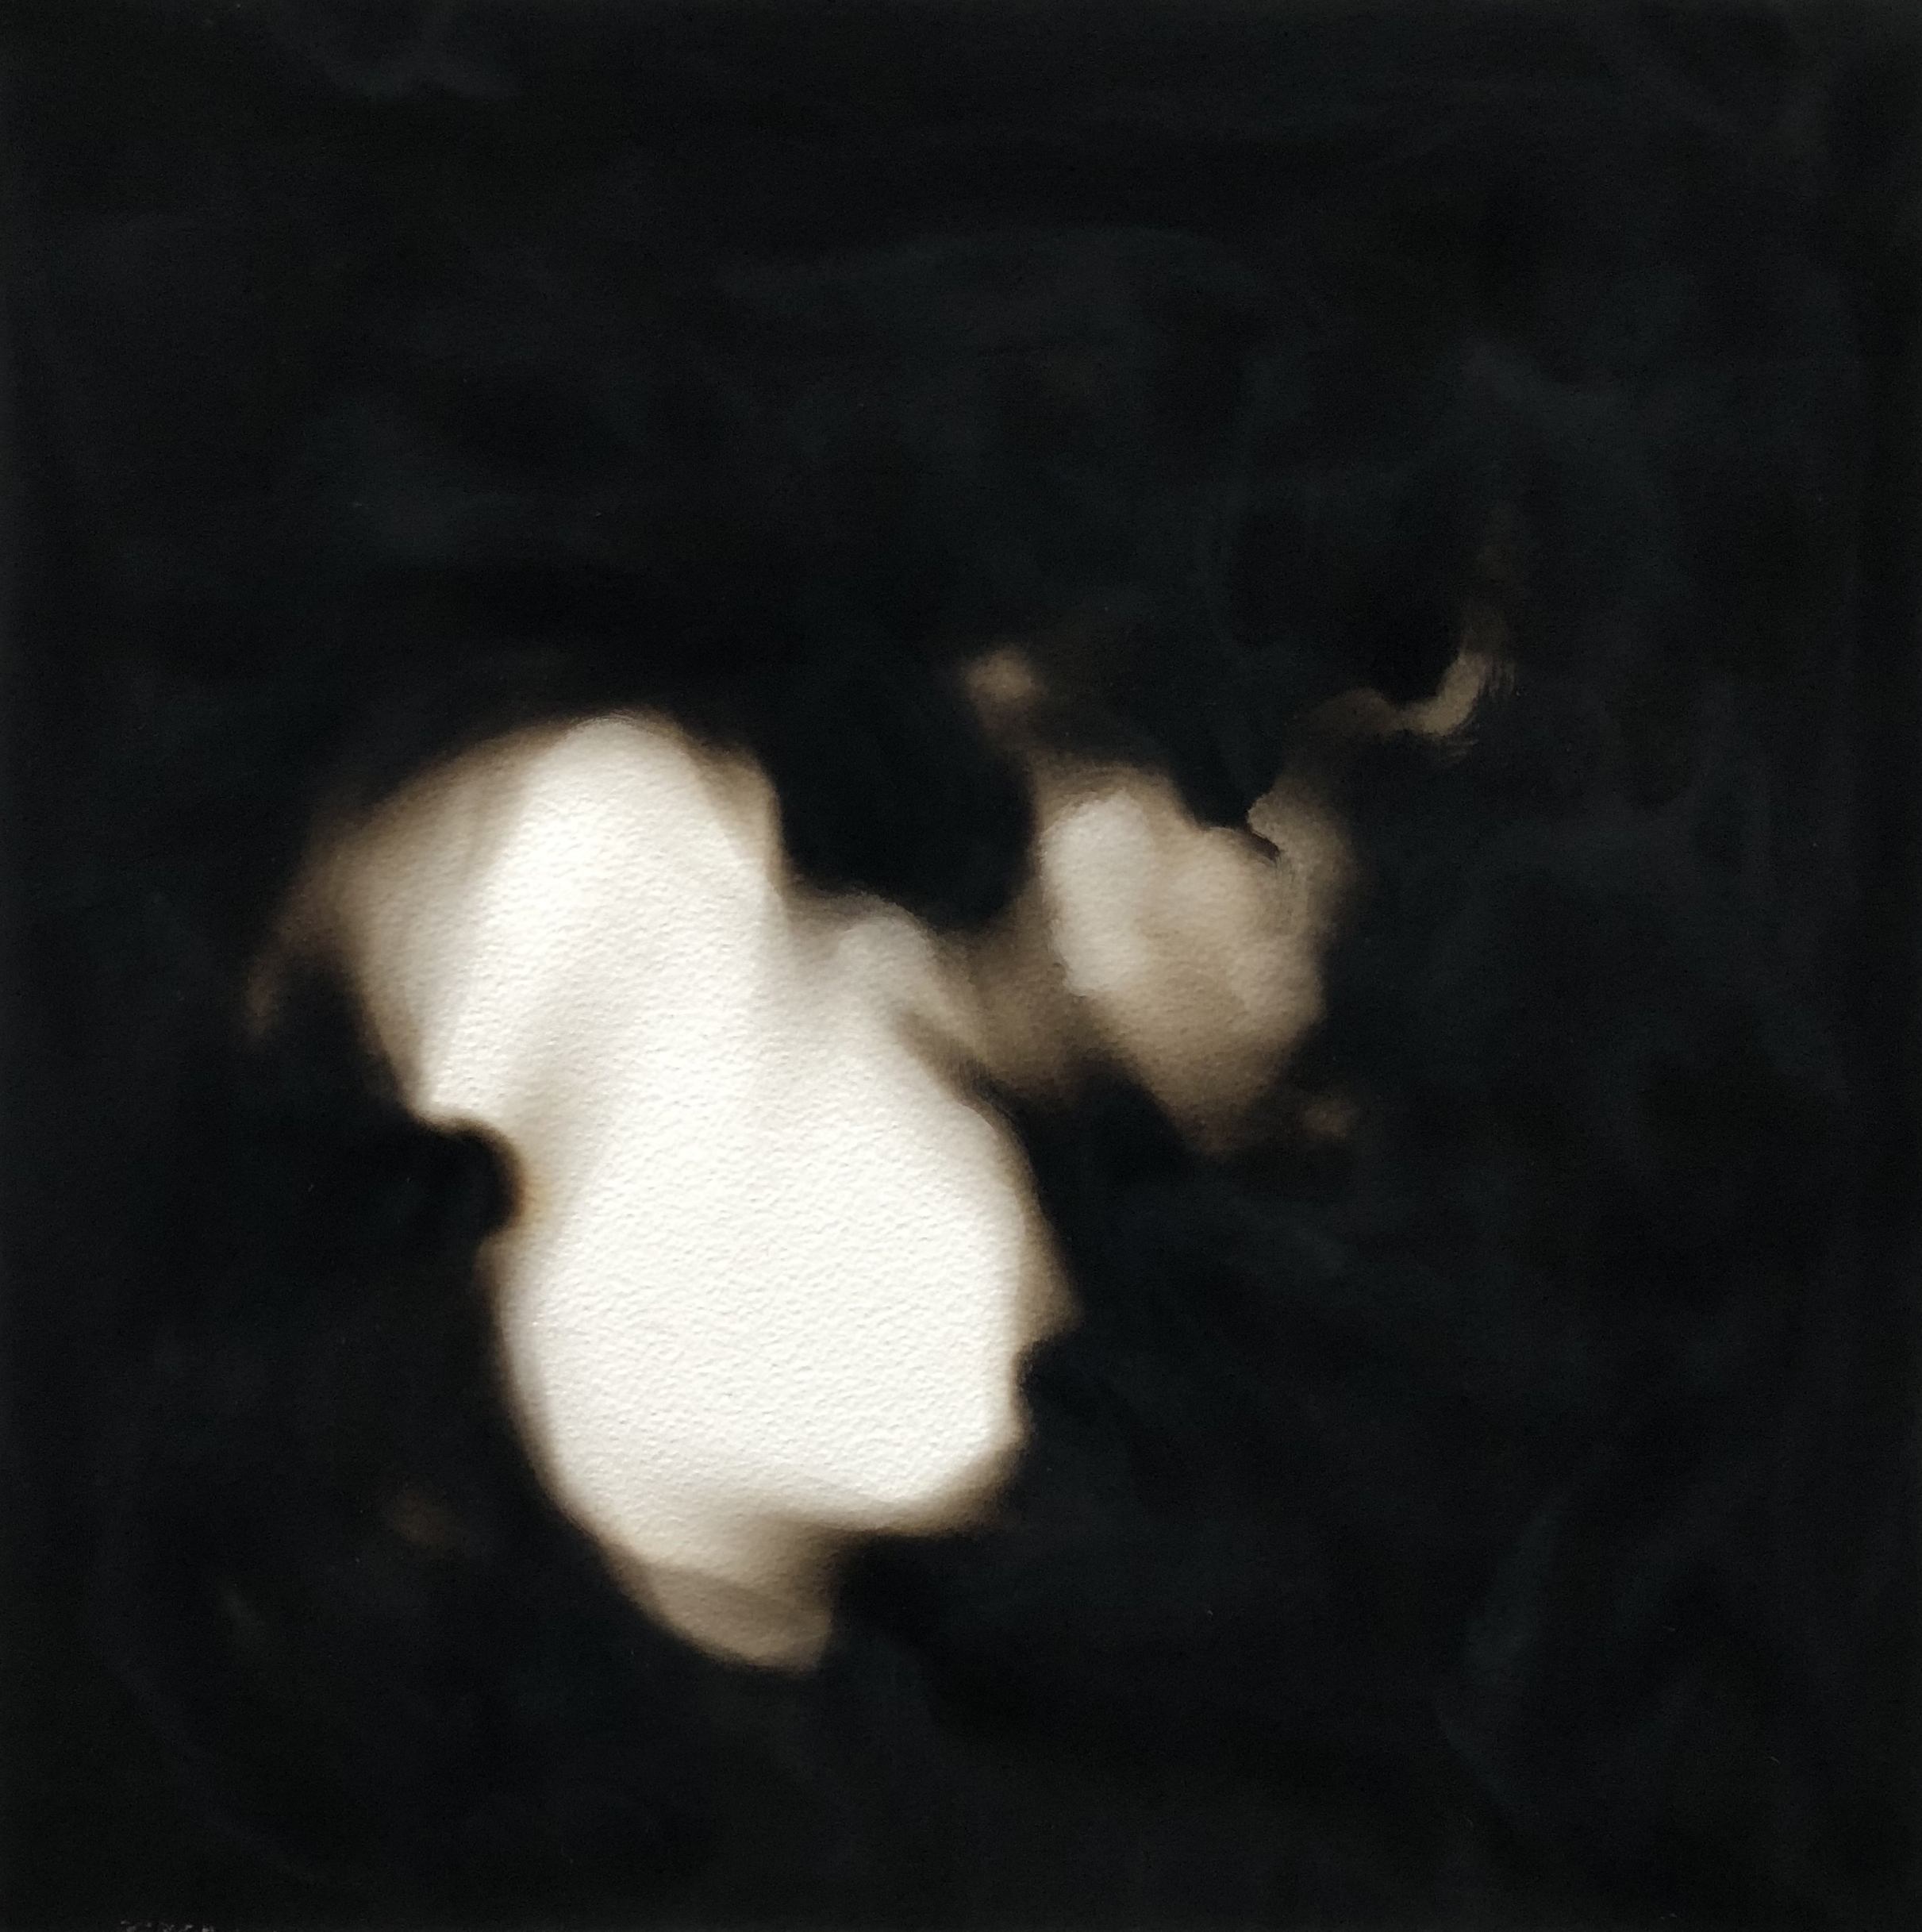 Equivalents , 2018  Candle soot on paper 40 x 40 cm